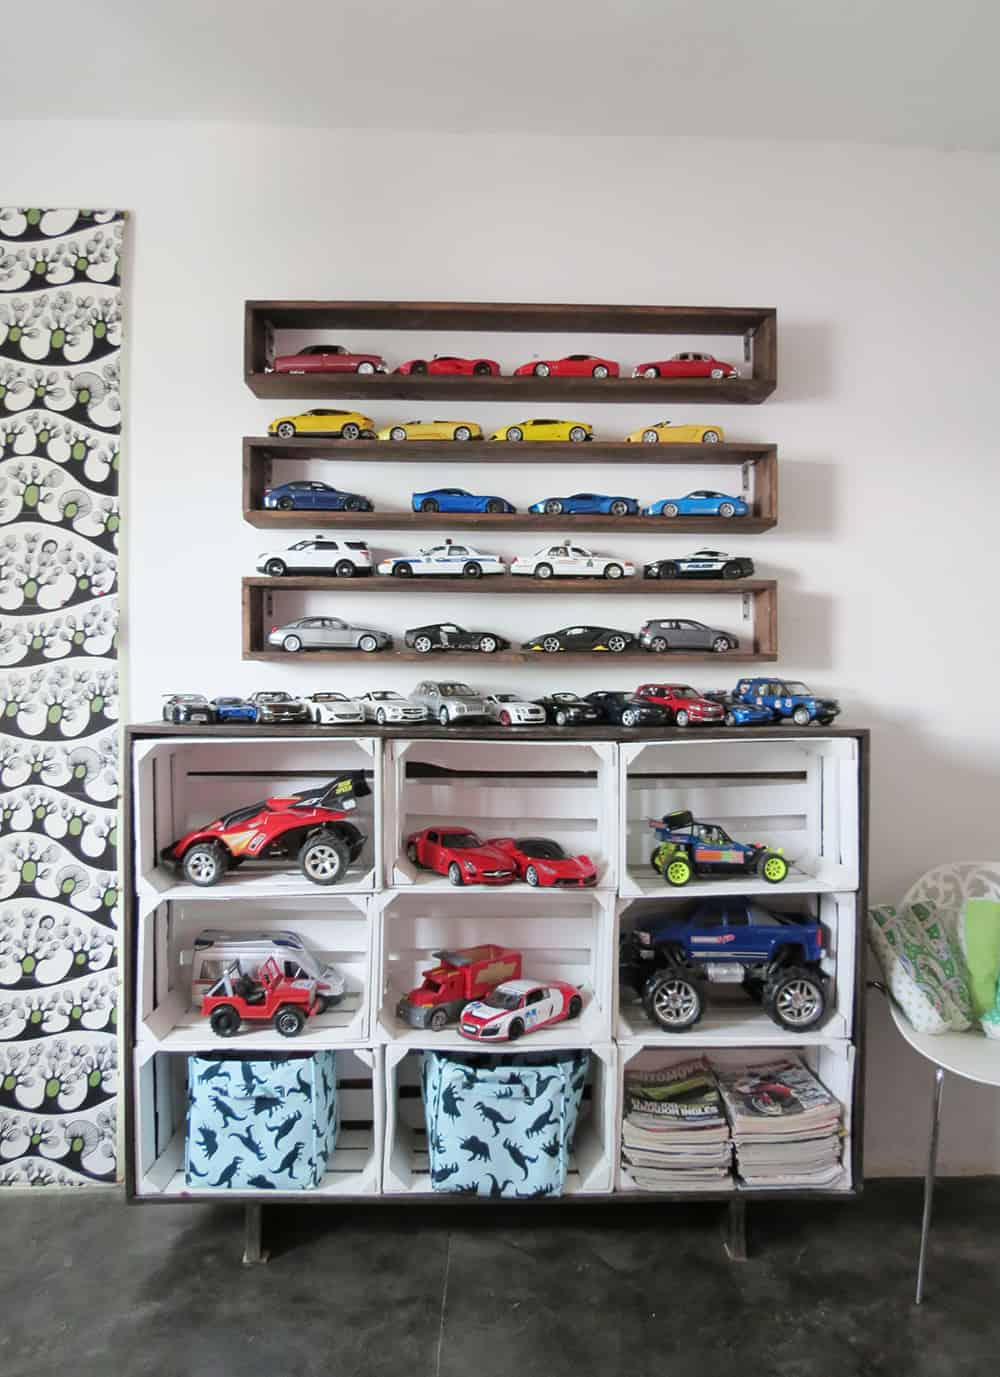 diy storage in kid's bedroom